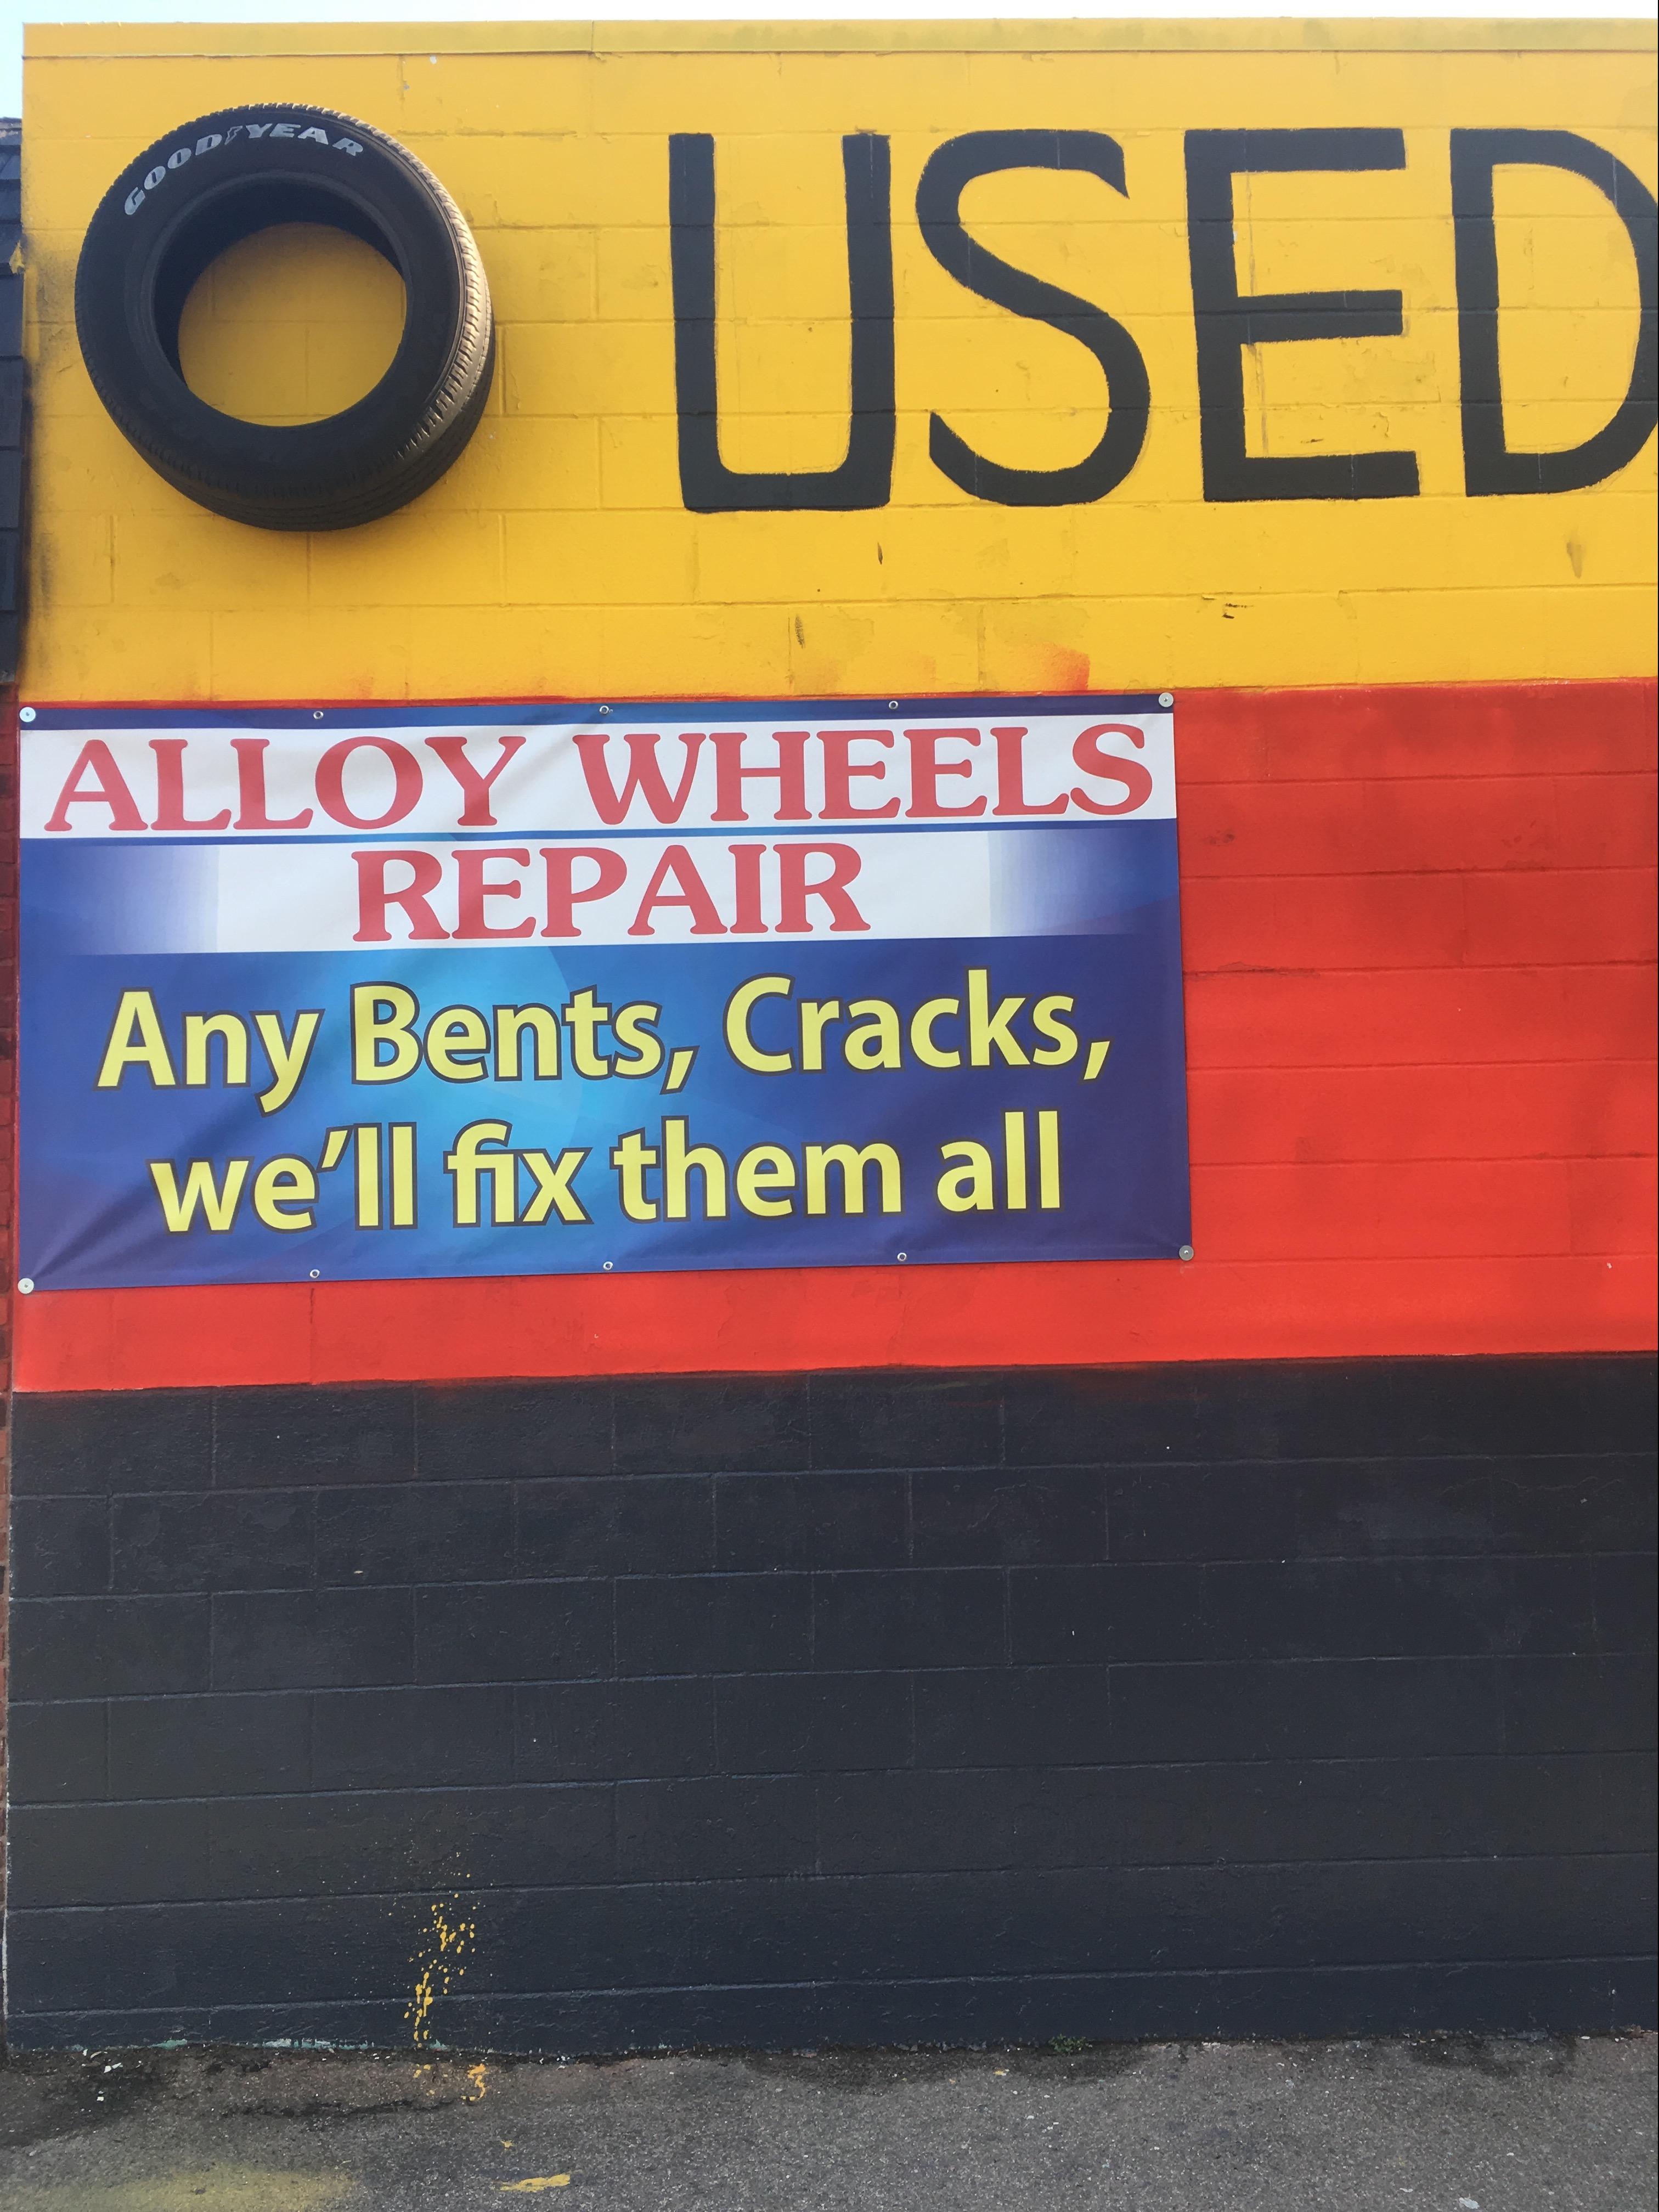 Quality Used Tires and Alloy Wheel Repair image 5